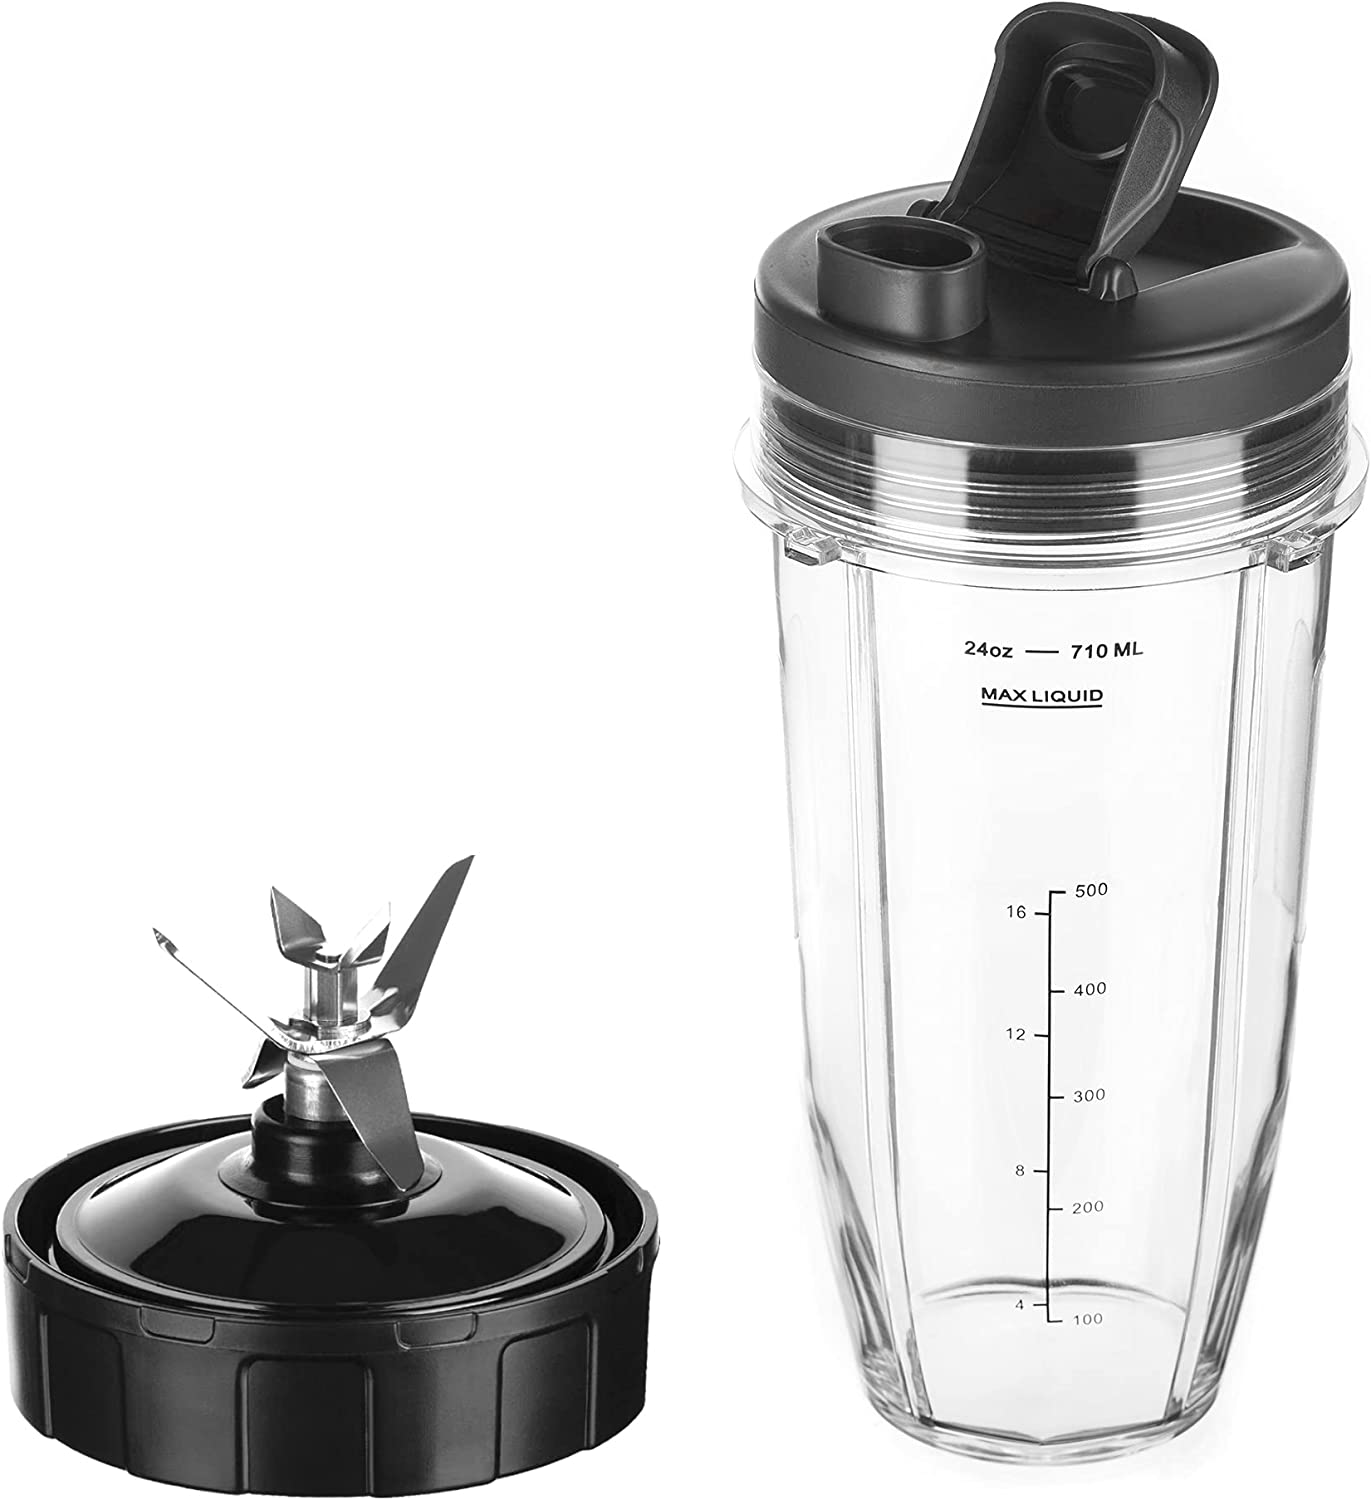 Replacement 7-Fins Blade & 24 oz Cup with Sip and Seal Compatible with Nutri Ninja Auto IQ Blenders: BL682-30 BL642-30 BL450-30 BL482-30 BL687CO-30 ect.